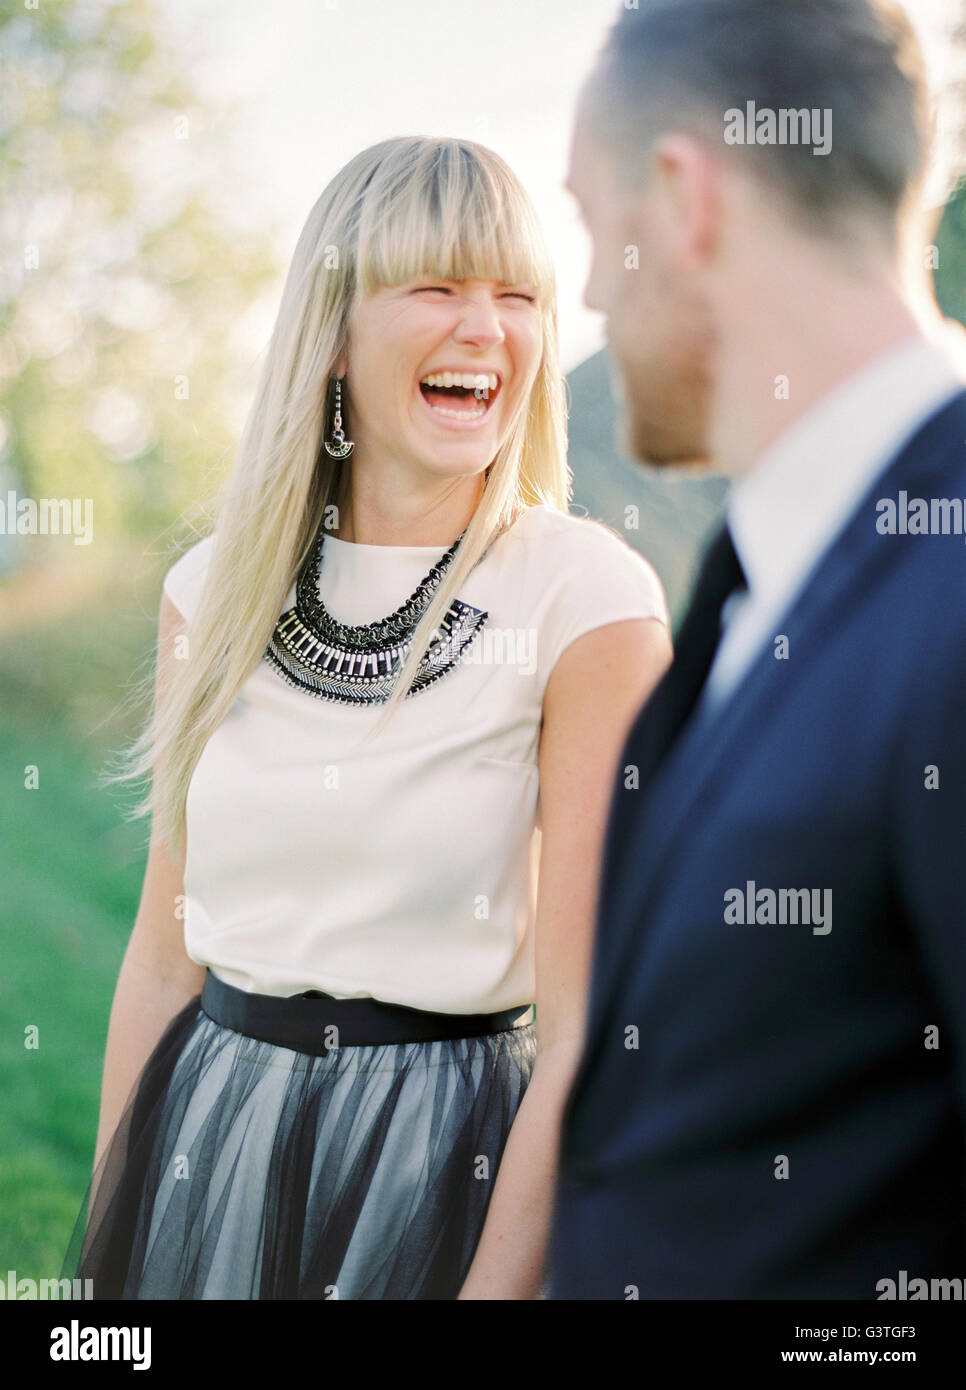 La Suède, Portrait of laughing Bride and Groom Photo Stock